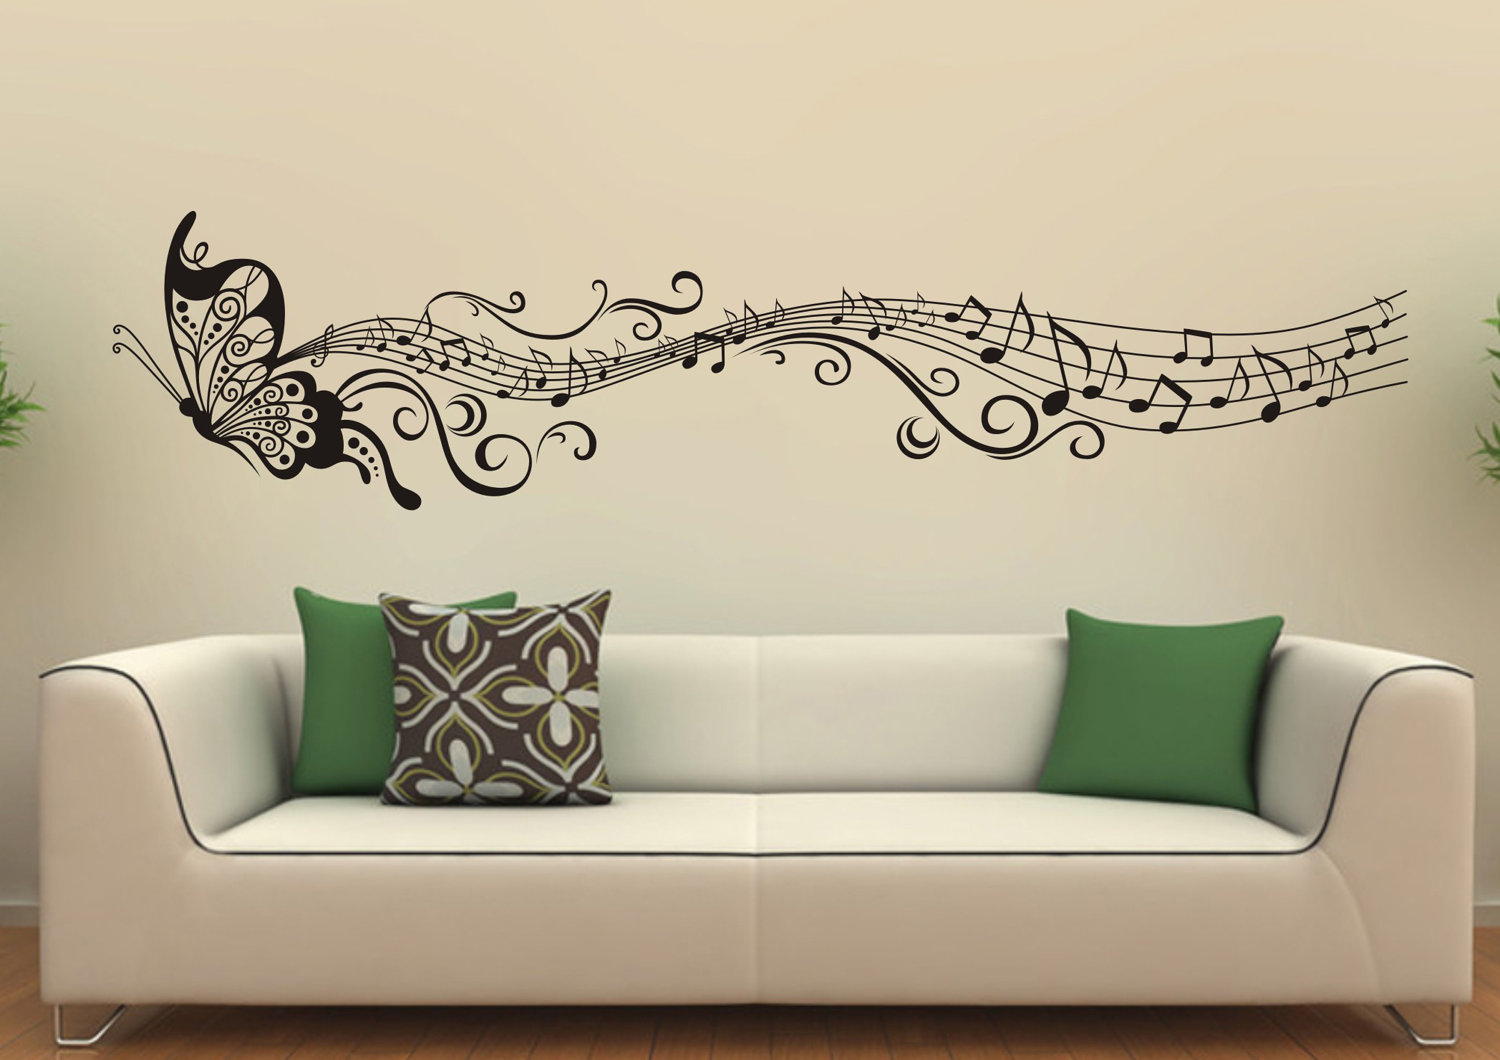 Living Room wall decal